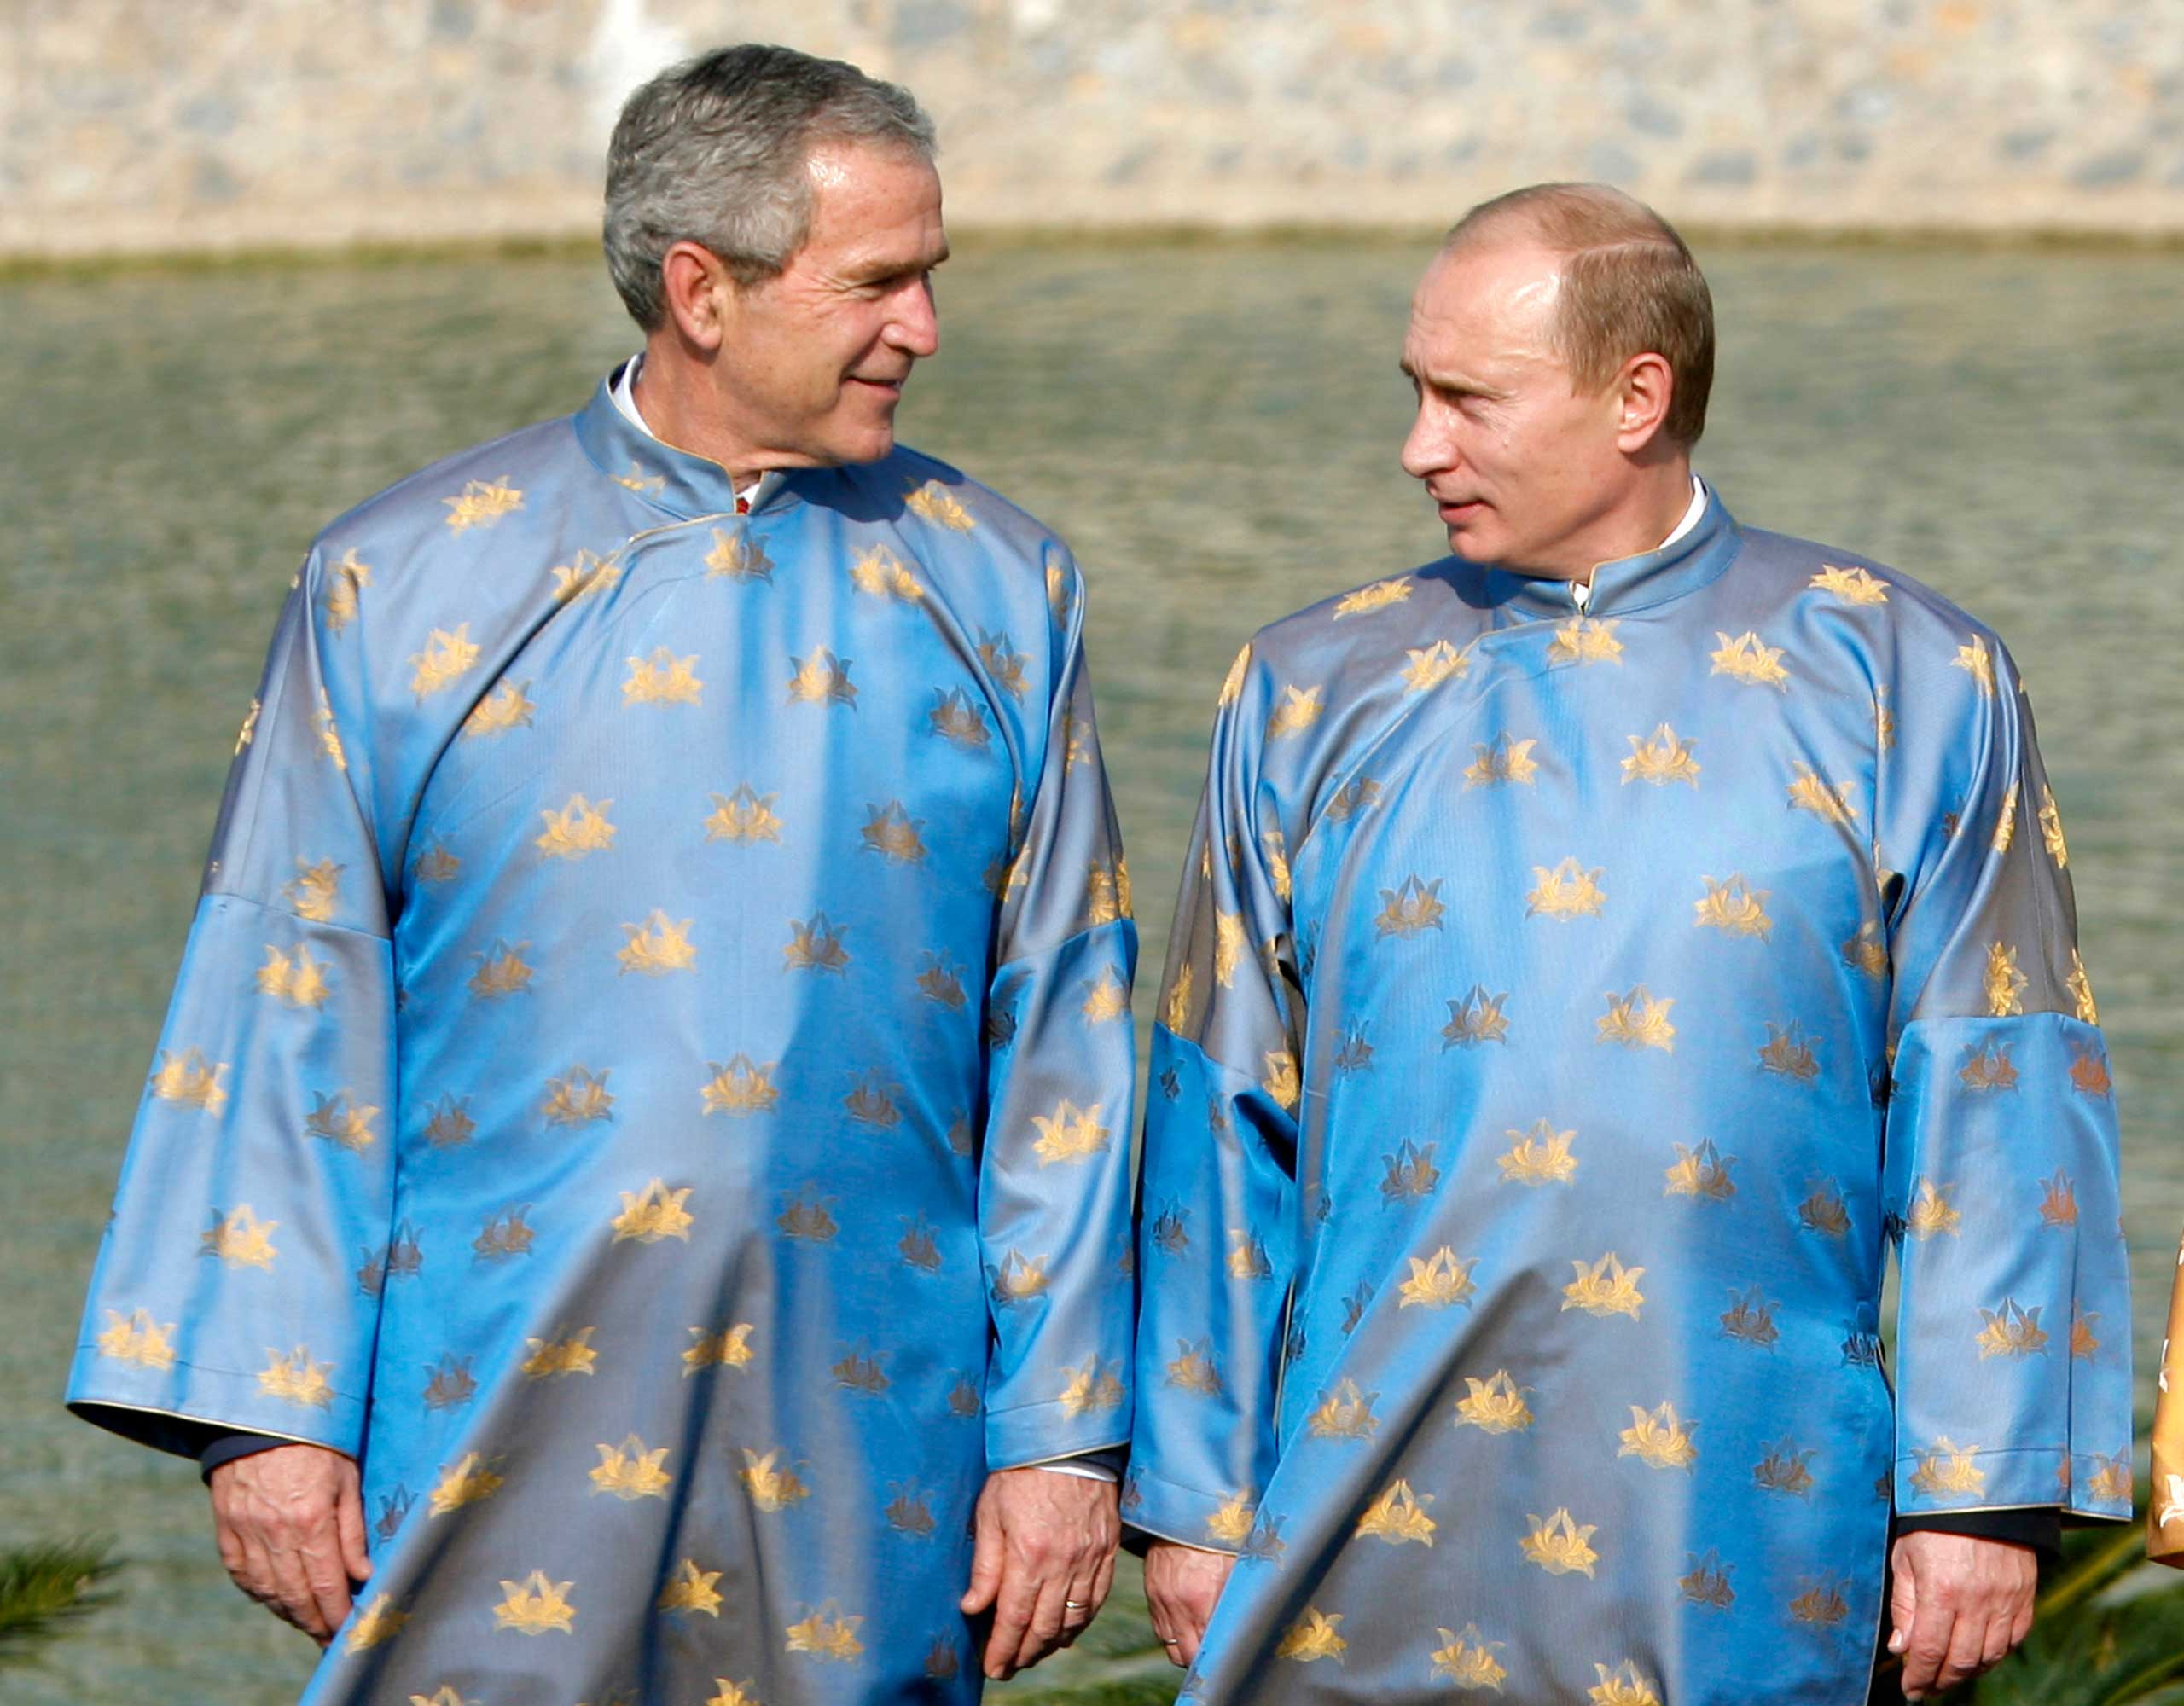 President George W. Bush speaks with Russian President Vladimir Putin, wearing Vietnamese 'ao dai' silk tunics, during the official photograph for the Asia-Pacific Economic Cooperation (APEC) Summit in Hanoi. Vietnam in 2006.